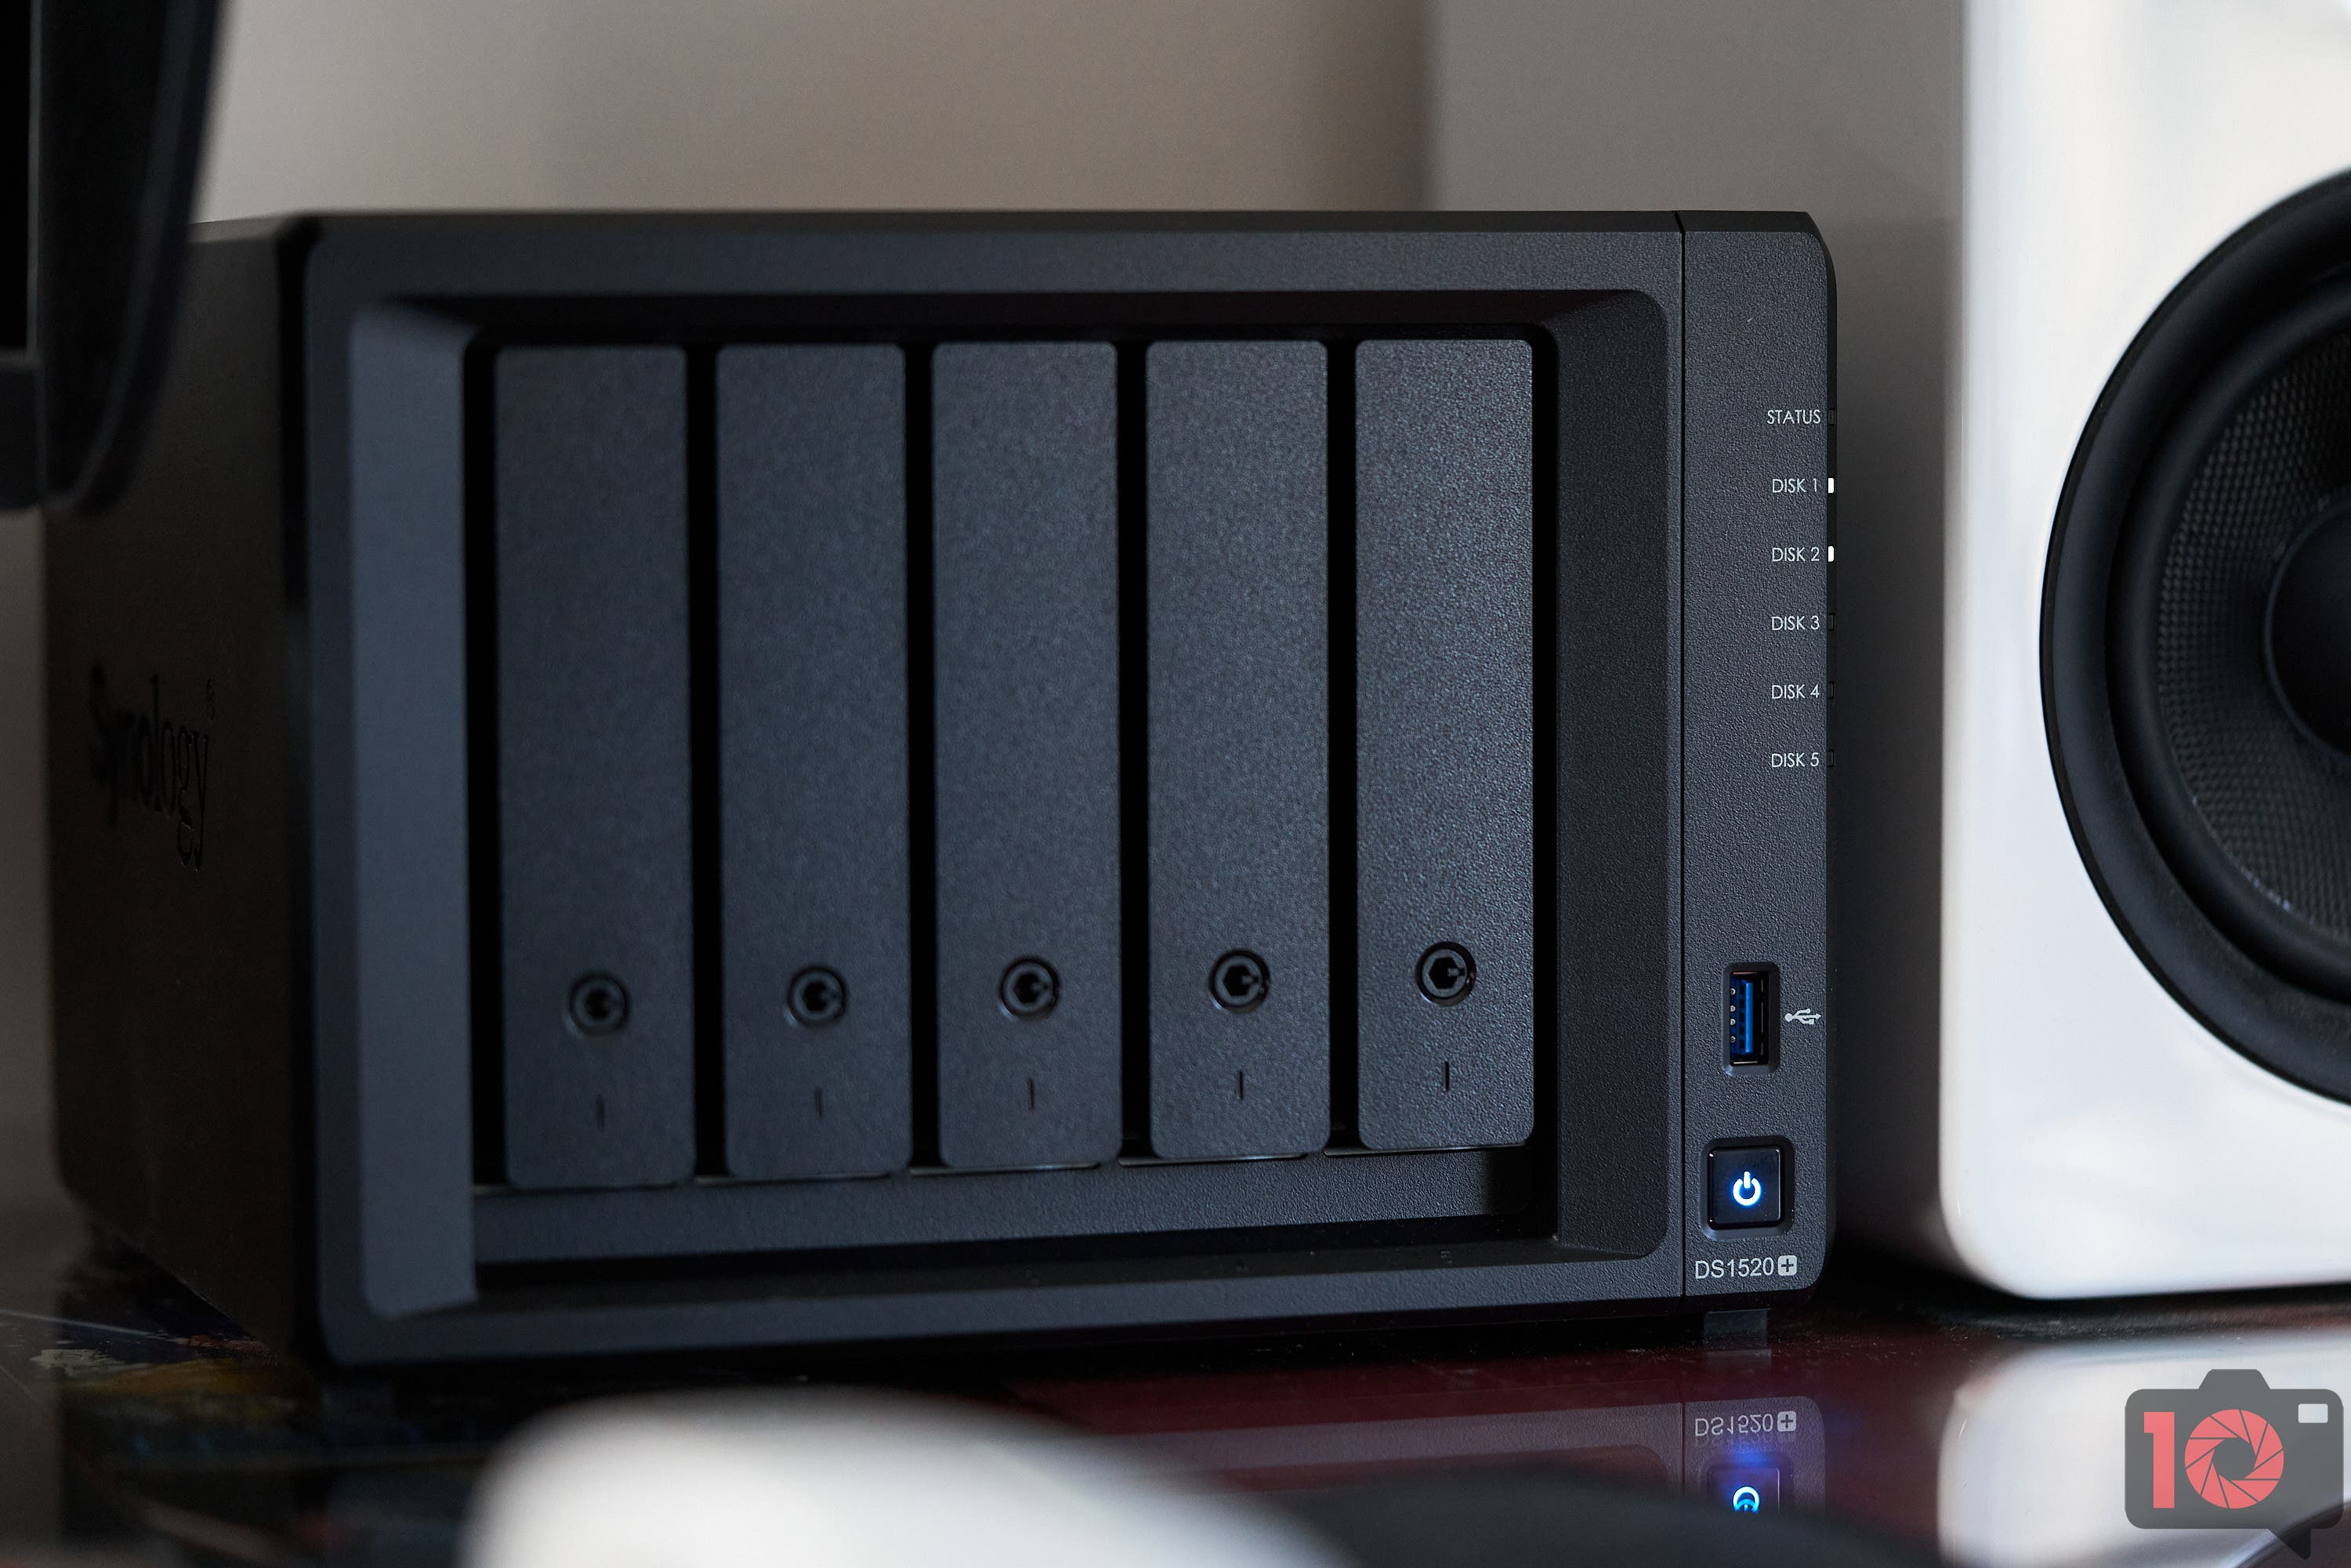 Photography Storage and a Whole Lot More: Synology DS1520+ Review